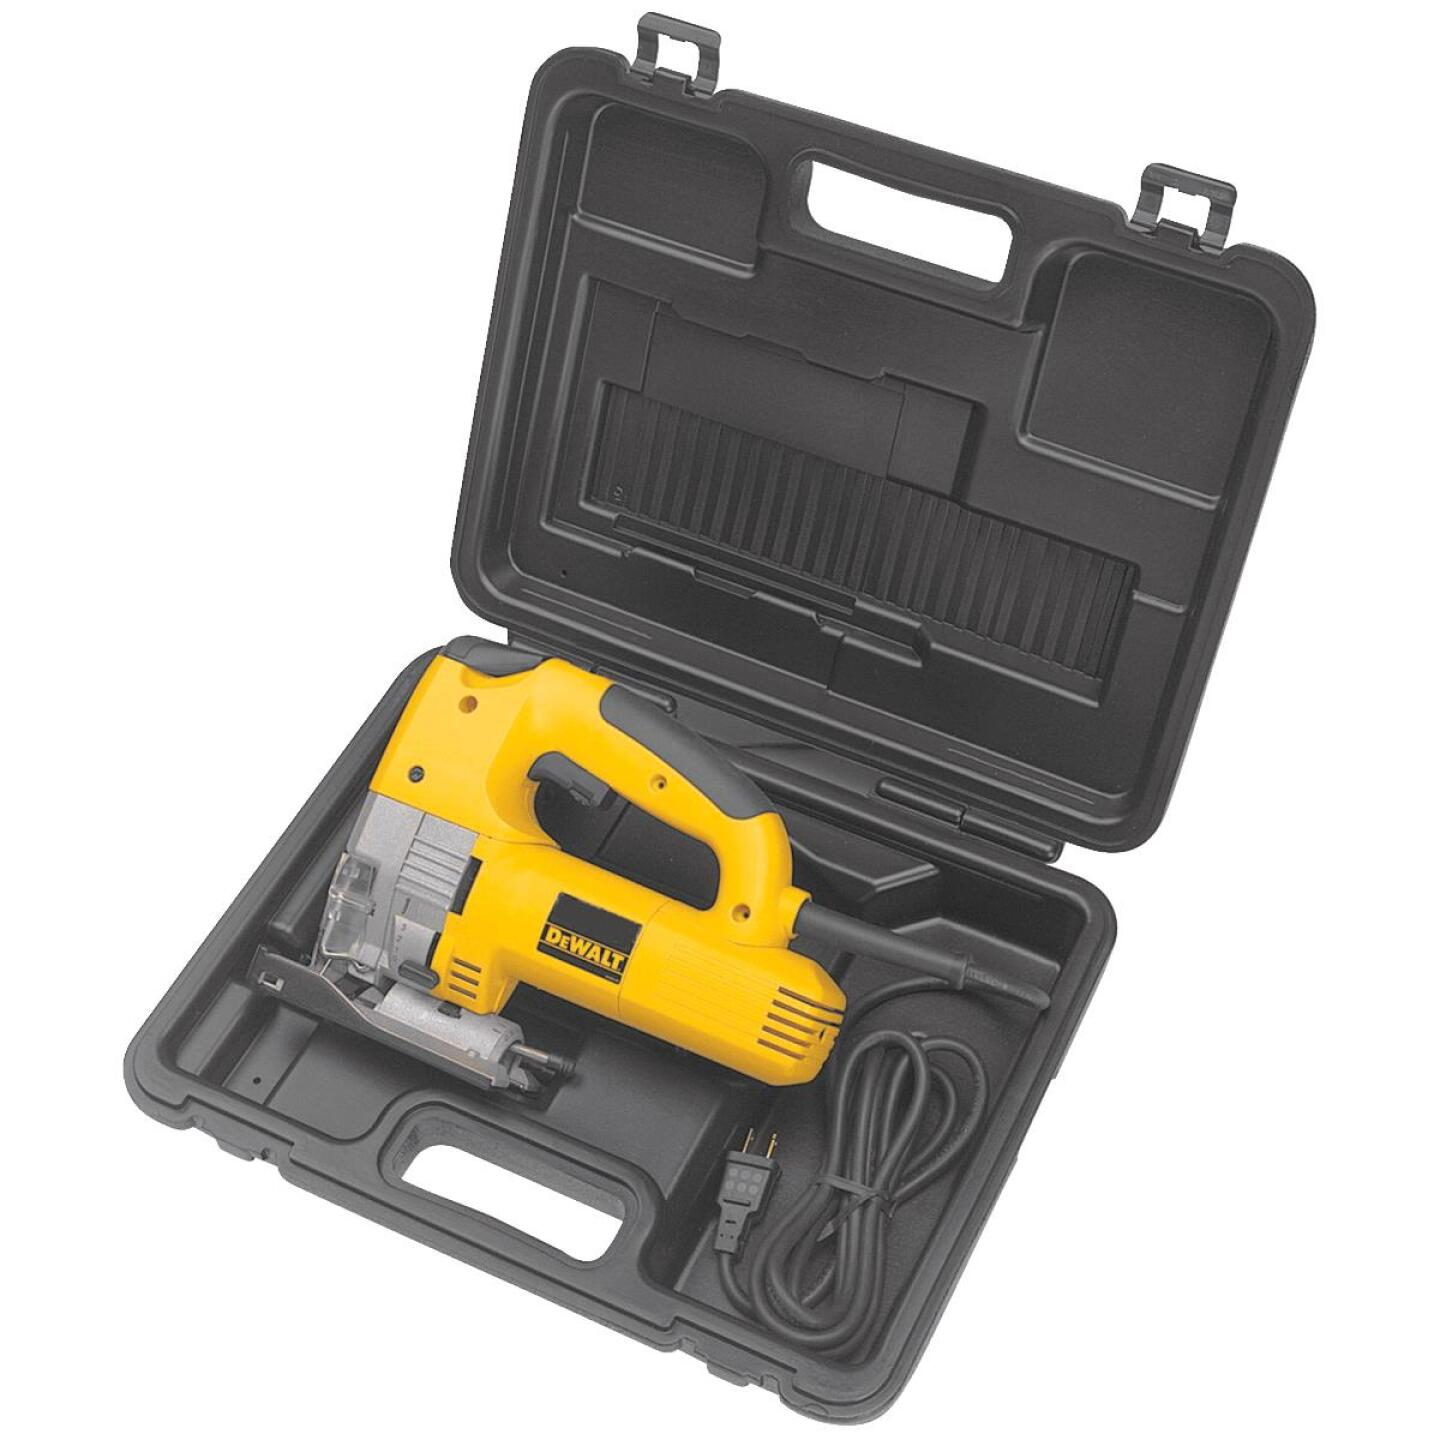 DeWalt 6.5A 4-Position 500 to 3100 SPM Jig Saw Image 9